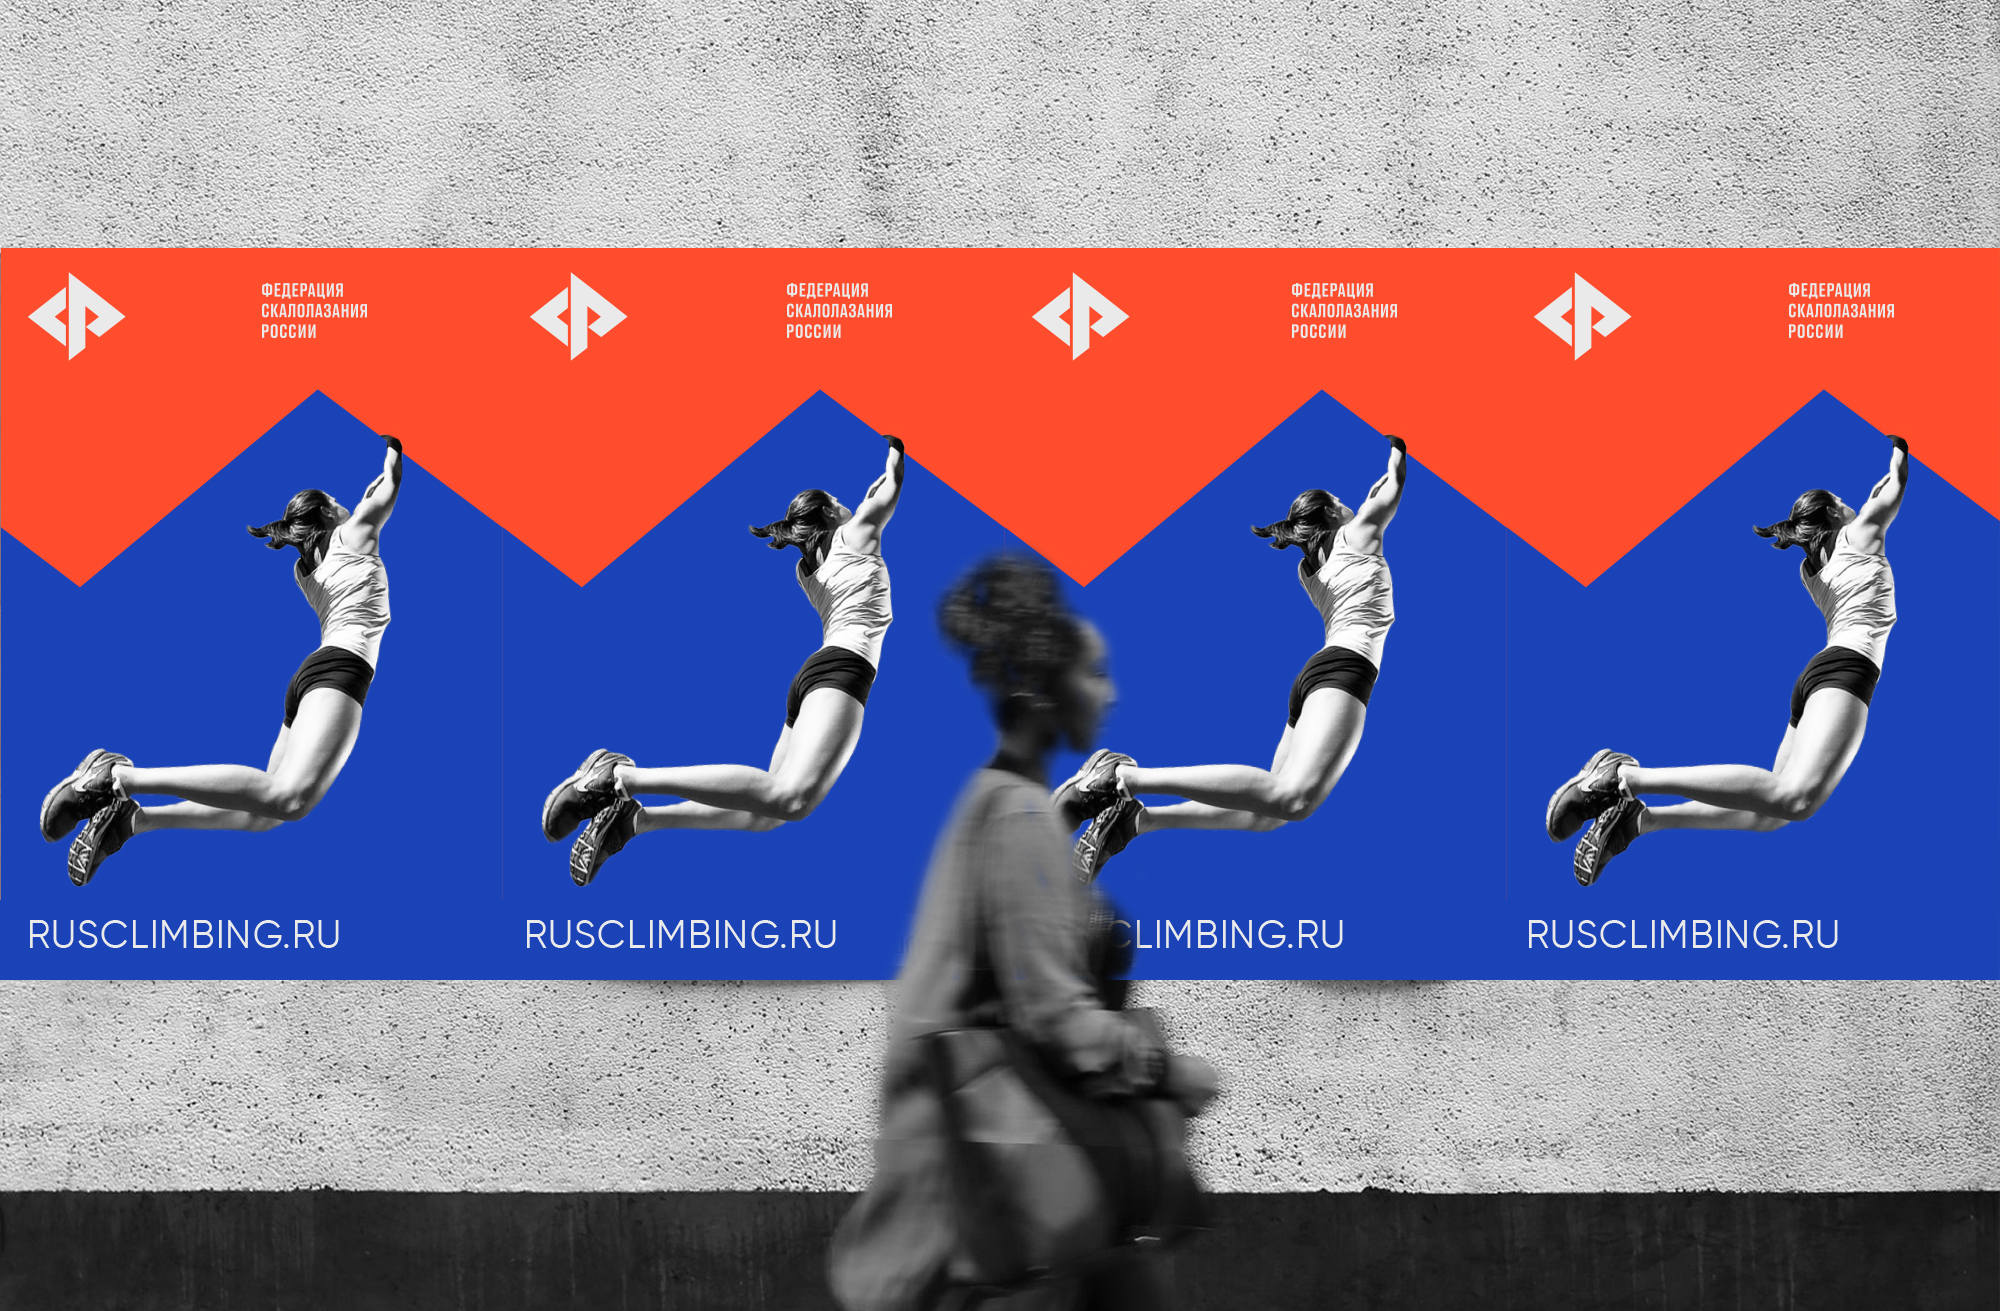 Brand Redesign for the Climbing Federation of Russia by Veronika Levitskaya